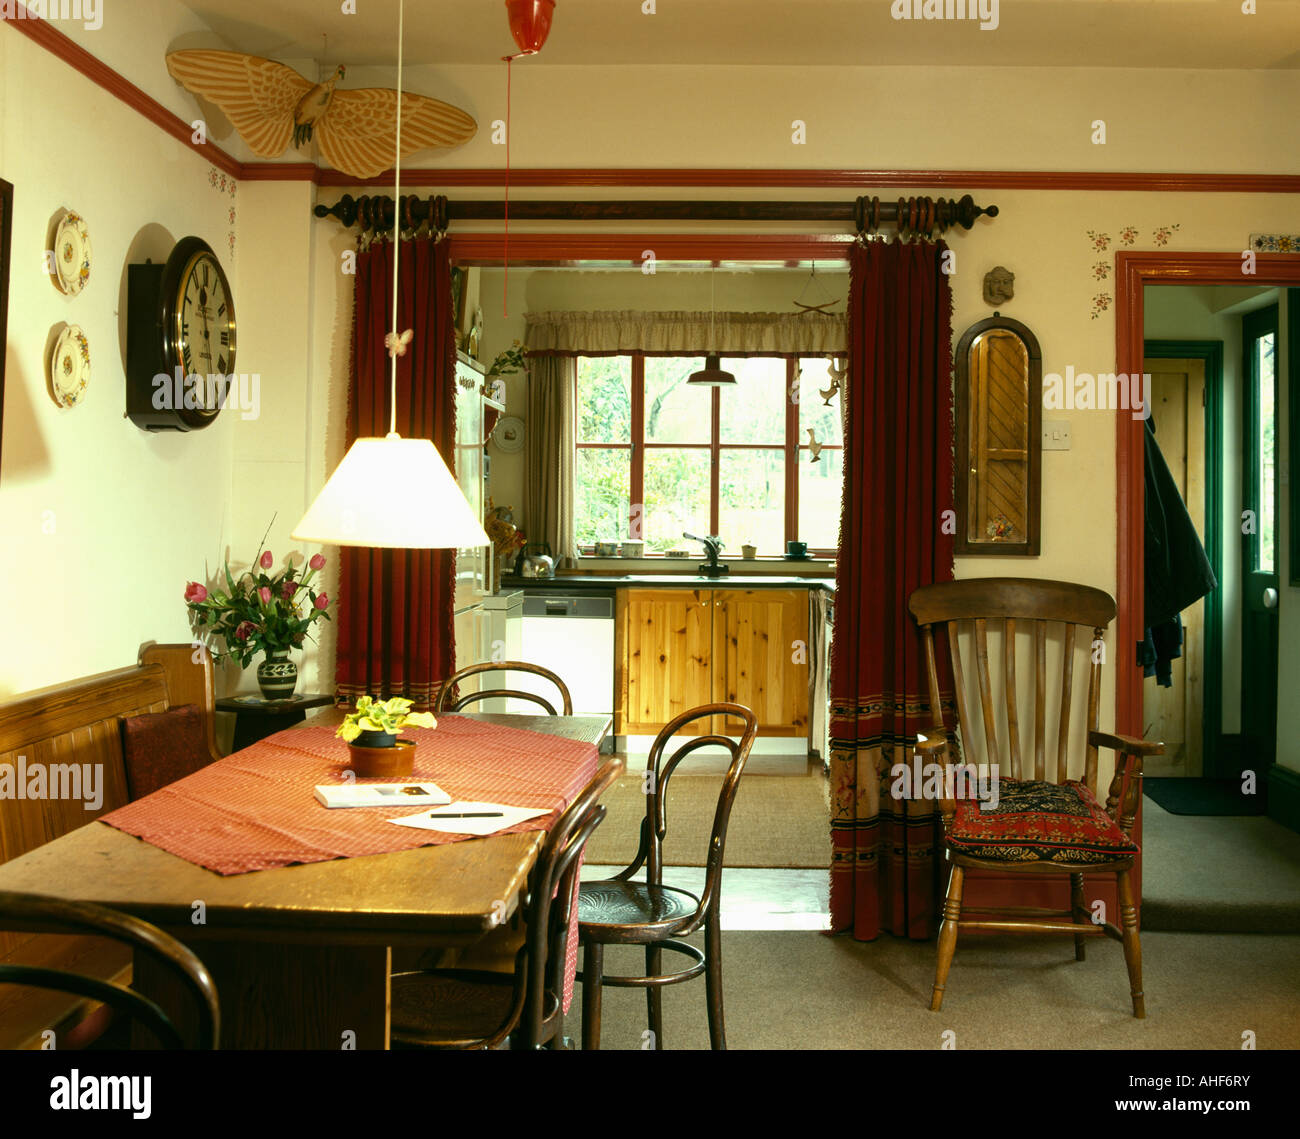 Windsor Chair In Dining Room With Pendant Light Over Rectangular Stock Photo Alamy